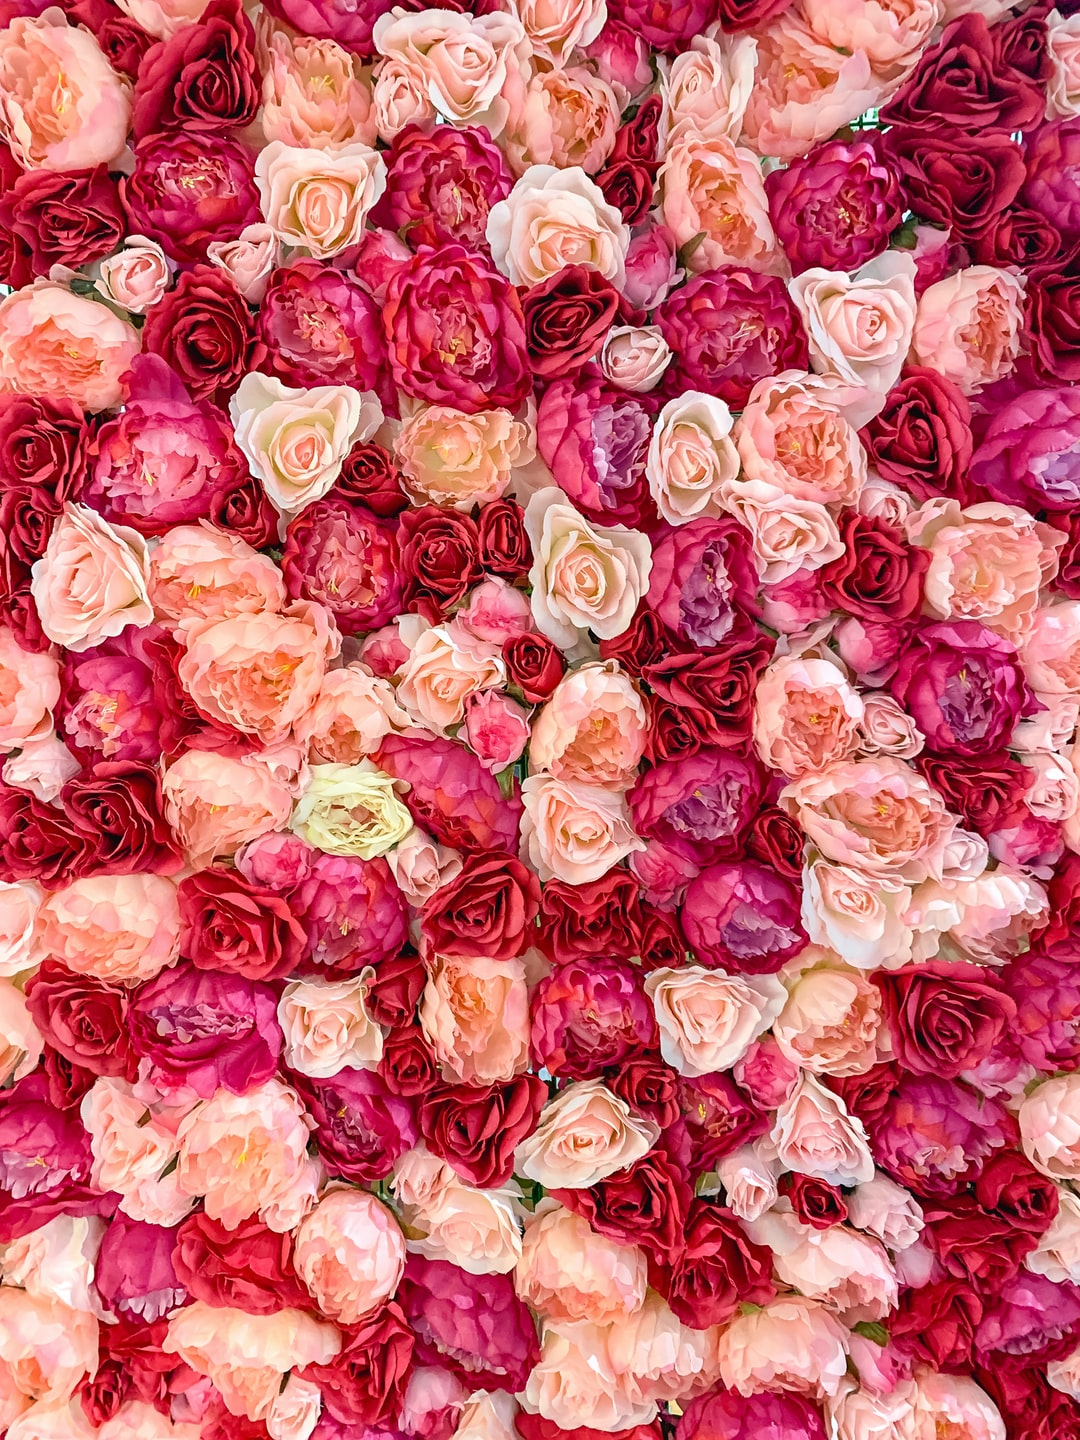 Wall of roses